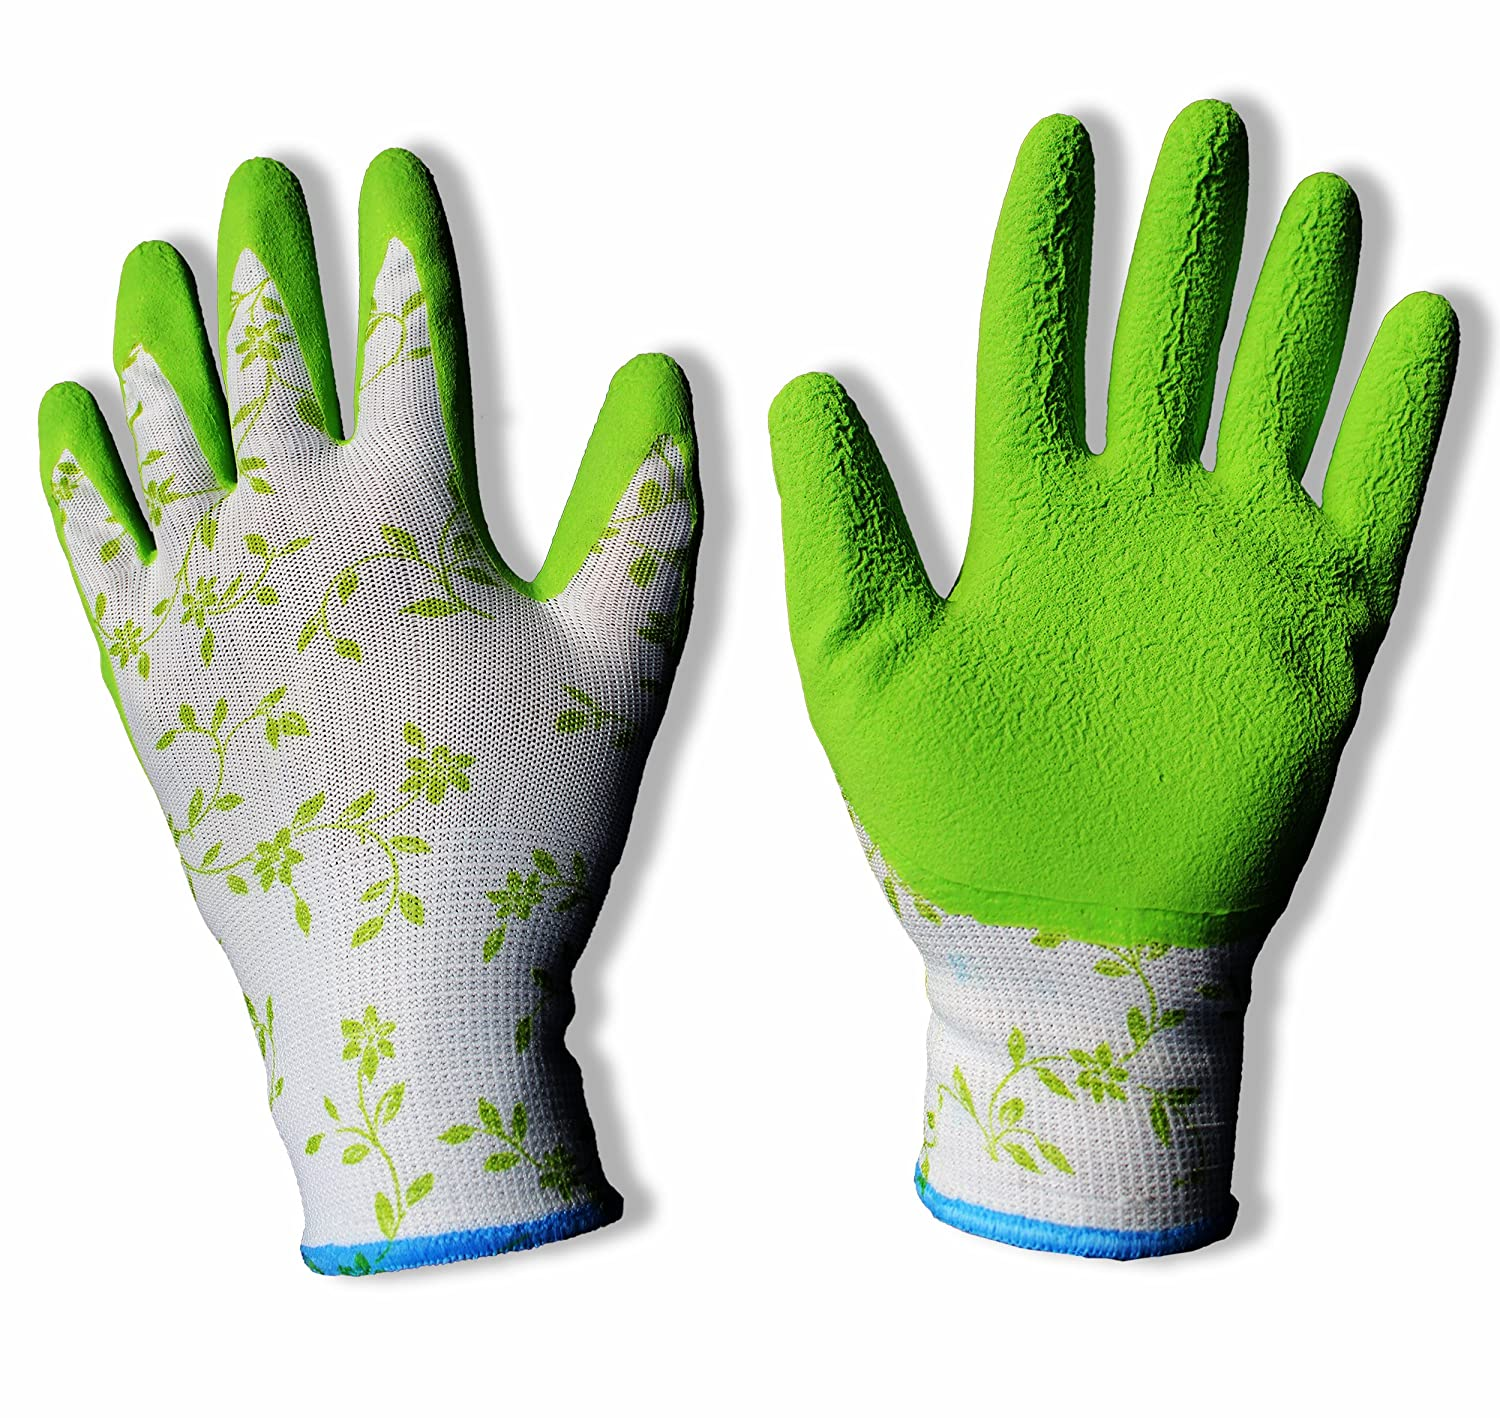 2pair-Ladies Elegant, Slim Fit, Latex Stretchable Gardening Gloves. Beautiful summer look-n-feel. Perfect for Garden and House Choirs. Non-slip and Ideal Gift Bagged. BUNDLE SAVINGS (2) MIC